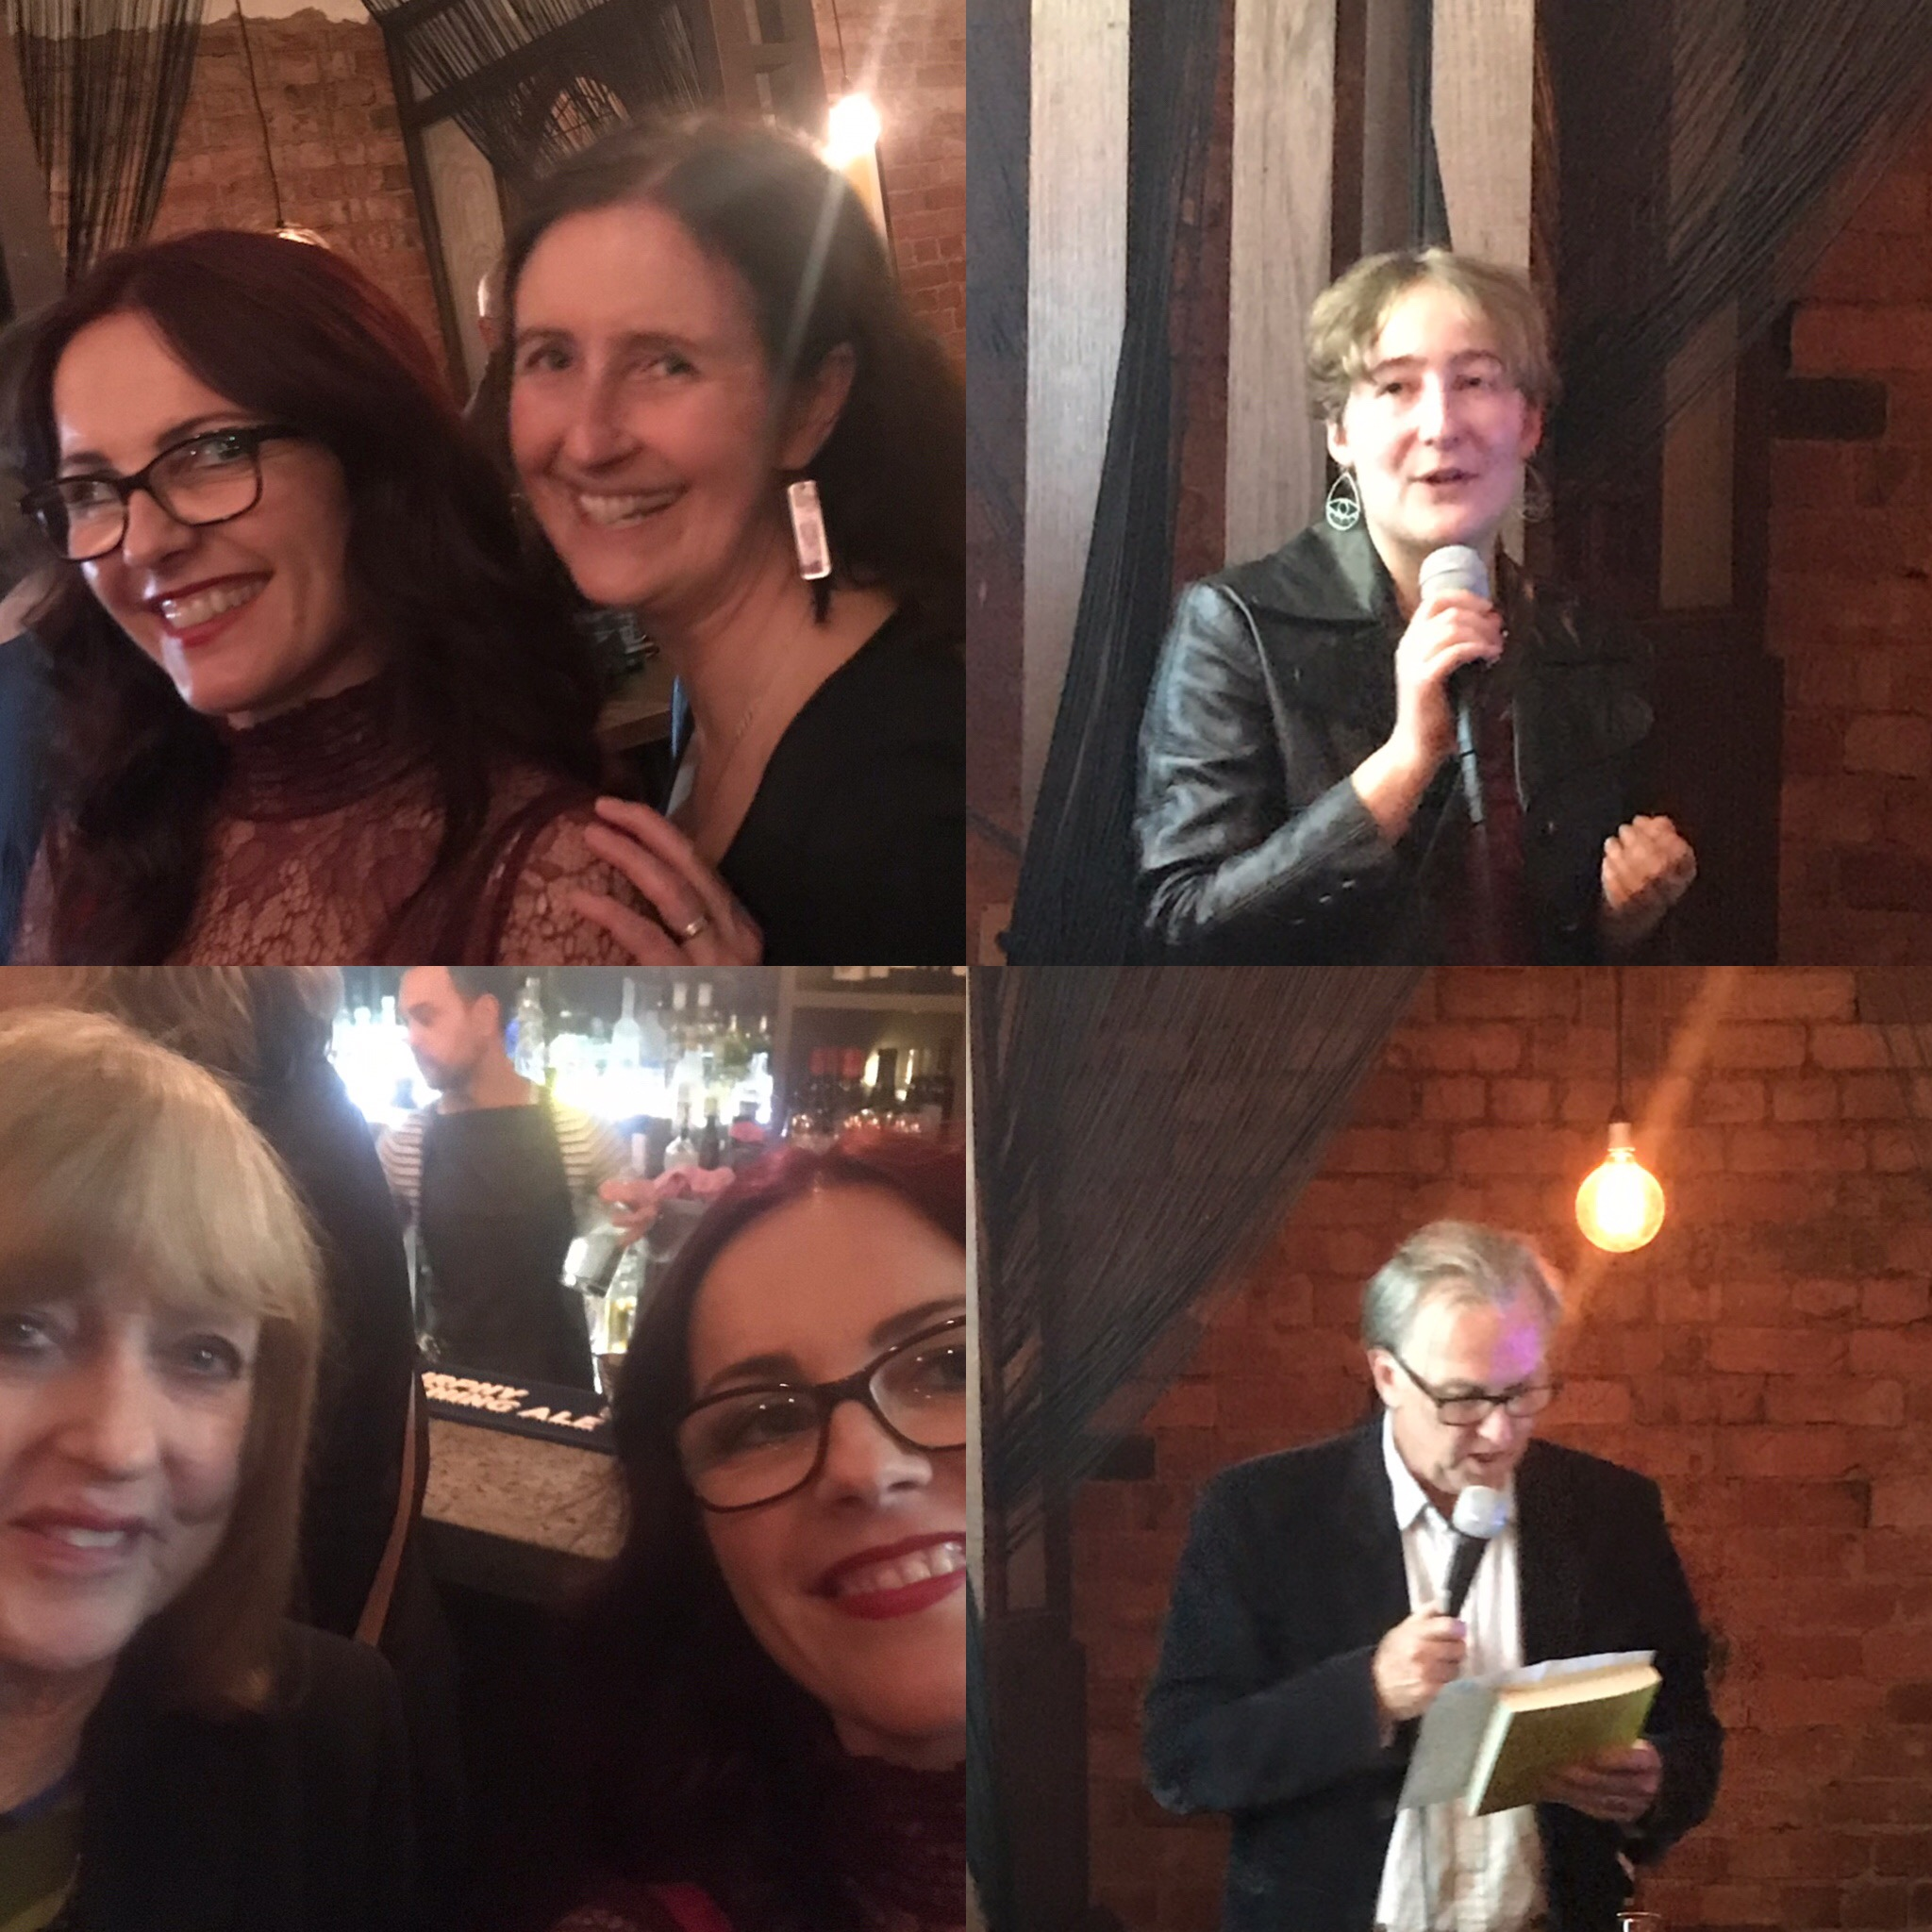 Thrilled to be at the annual Text Party to celebrate this year's Text Prize winner Georgina Young, with my editor from Text Publishing Jane Pearson, winner Georgina (top right), Lauris from Booked Out Speakers Agency (bottom left) and Text's Senior Editor Michael Hawyard.